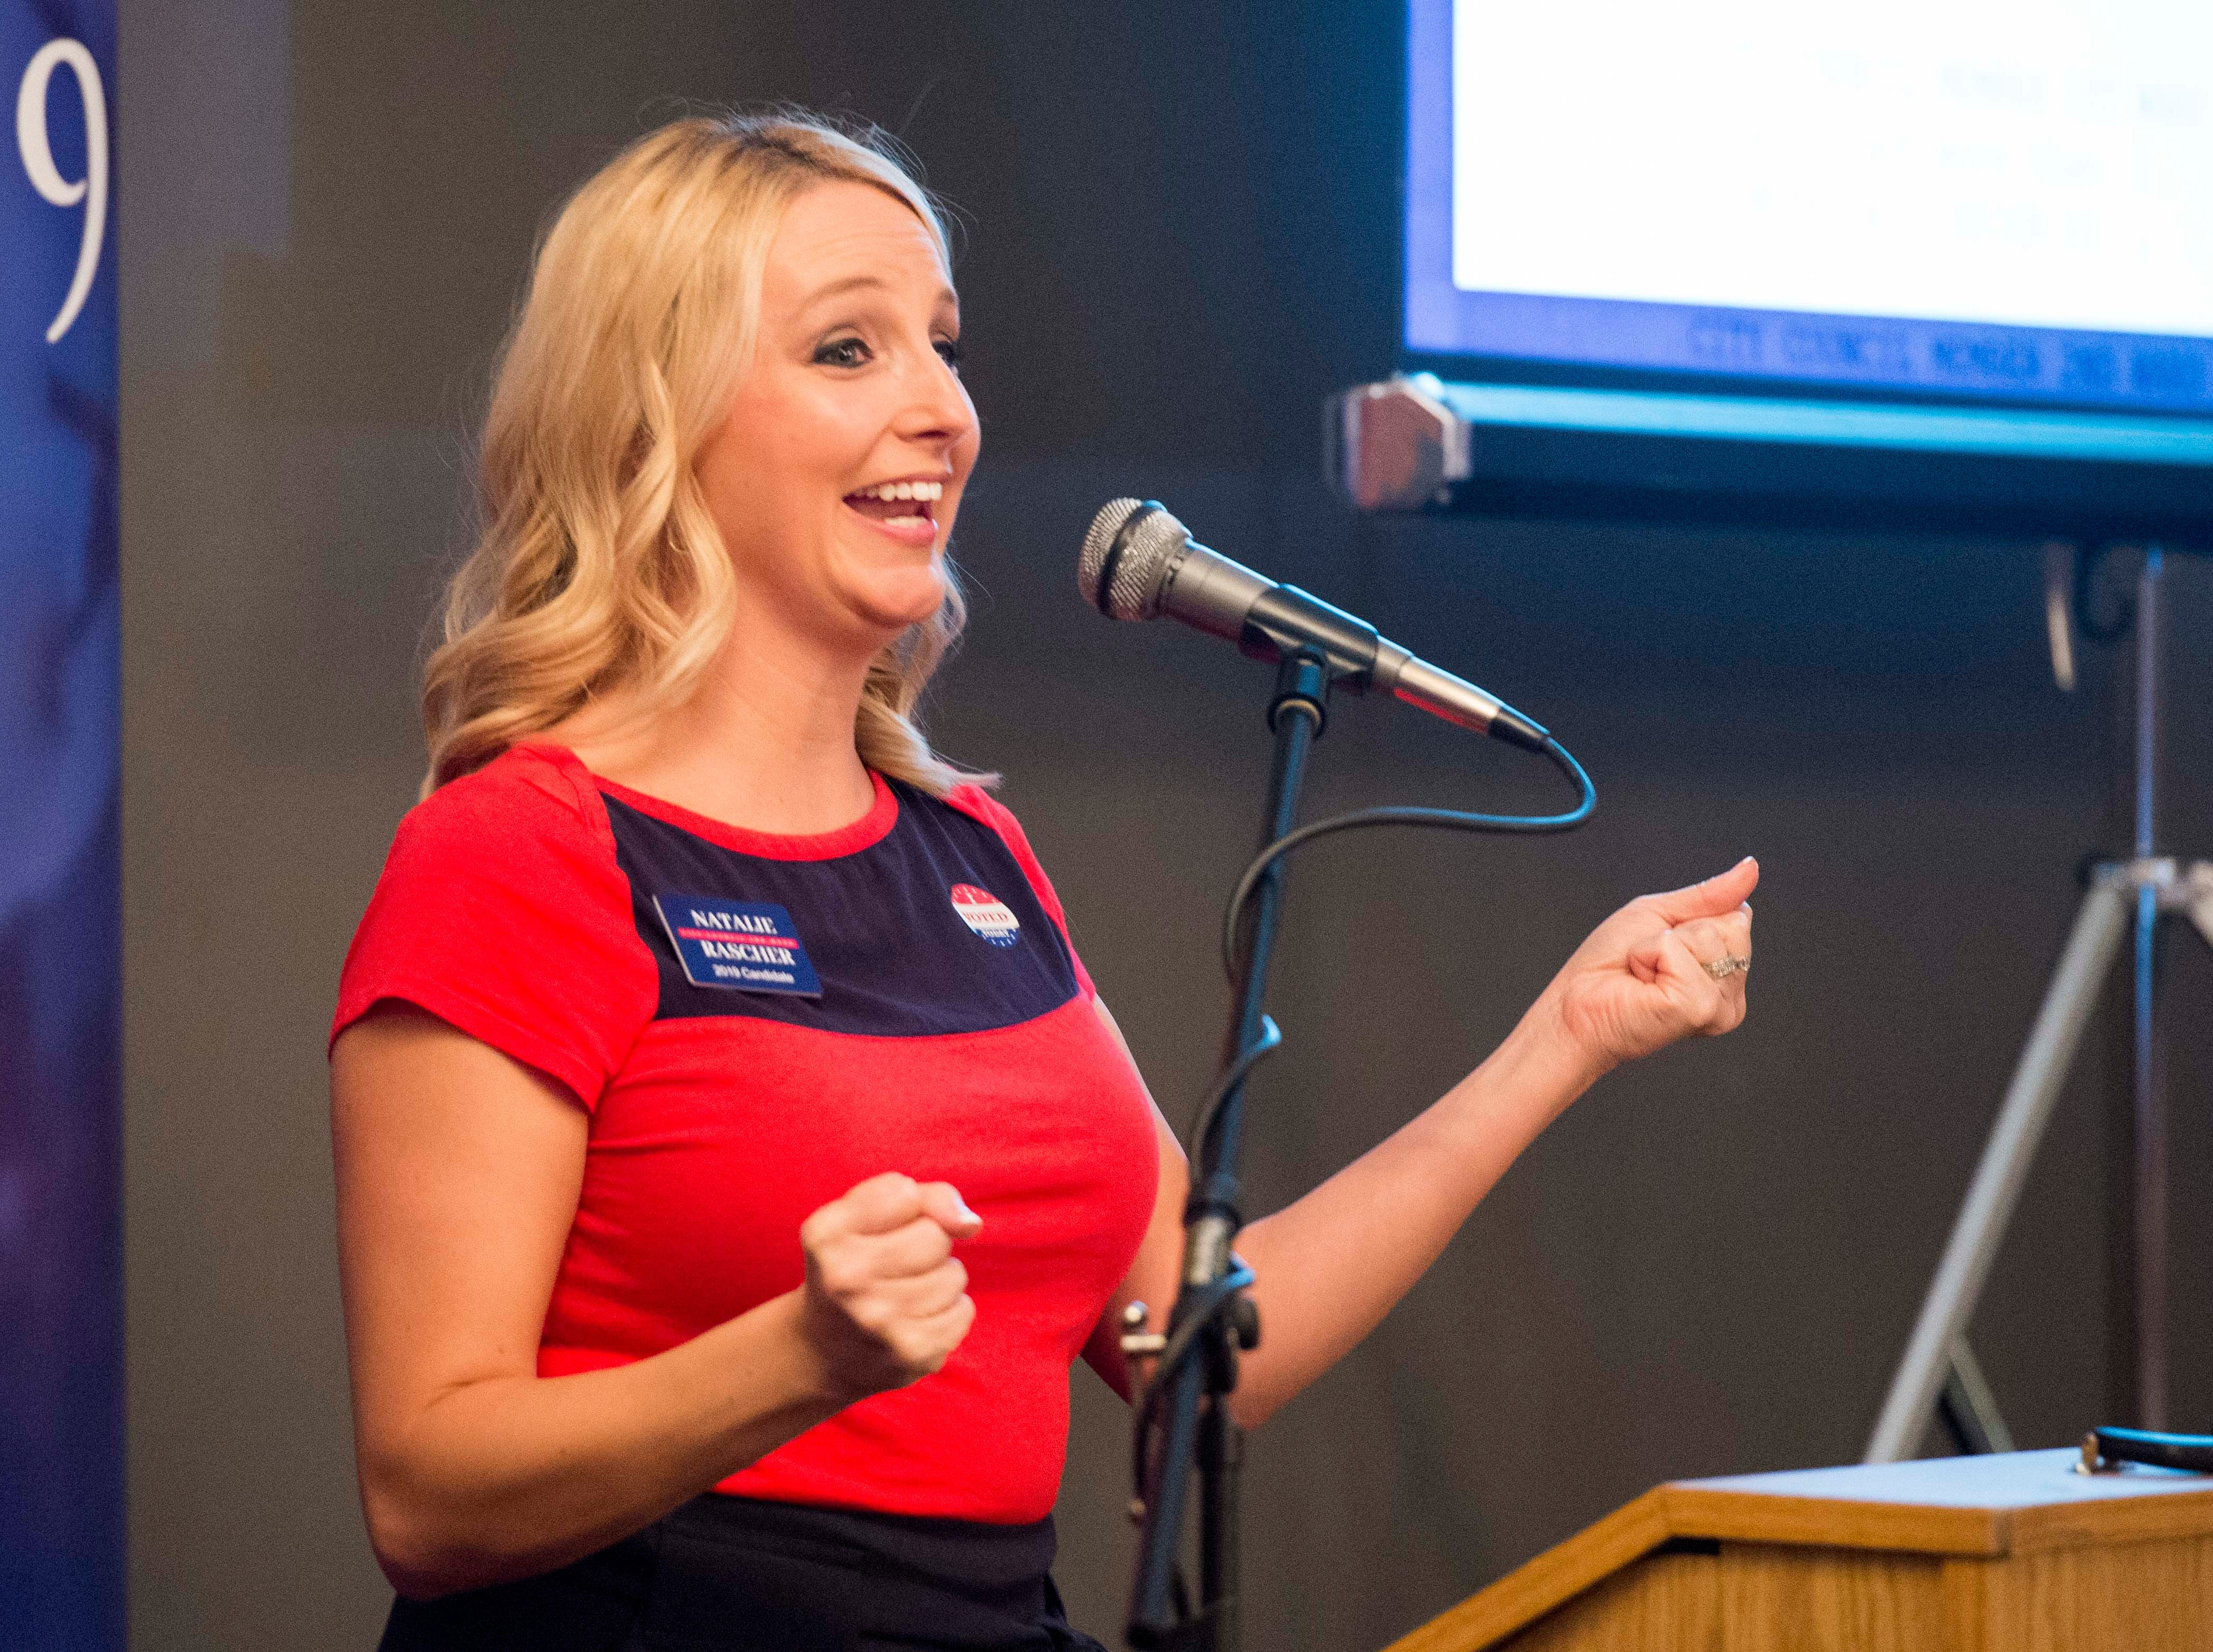 City Council second ward candidate Natalie (R) address the crowd during the Vanderburgh County Republican Party's watch party at Sauced! restaurant on Haynie's Corner Tuesday, May 7, 2019.